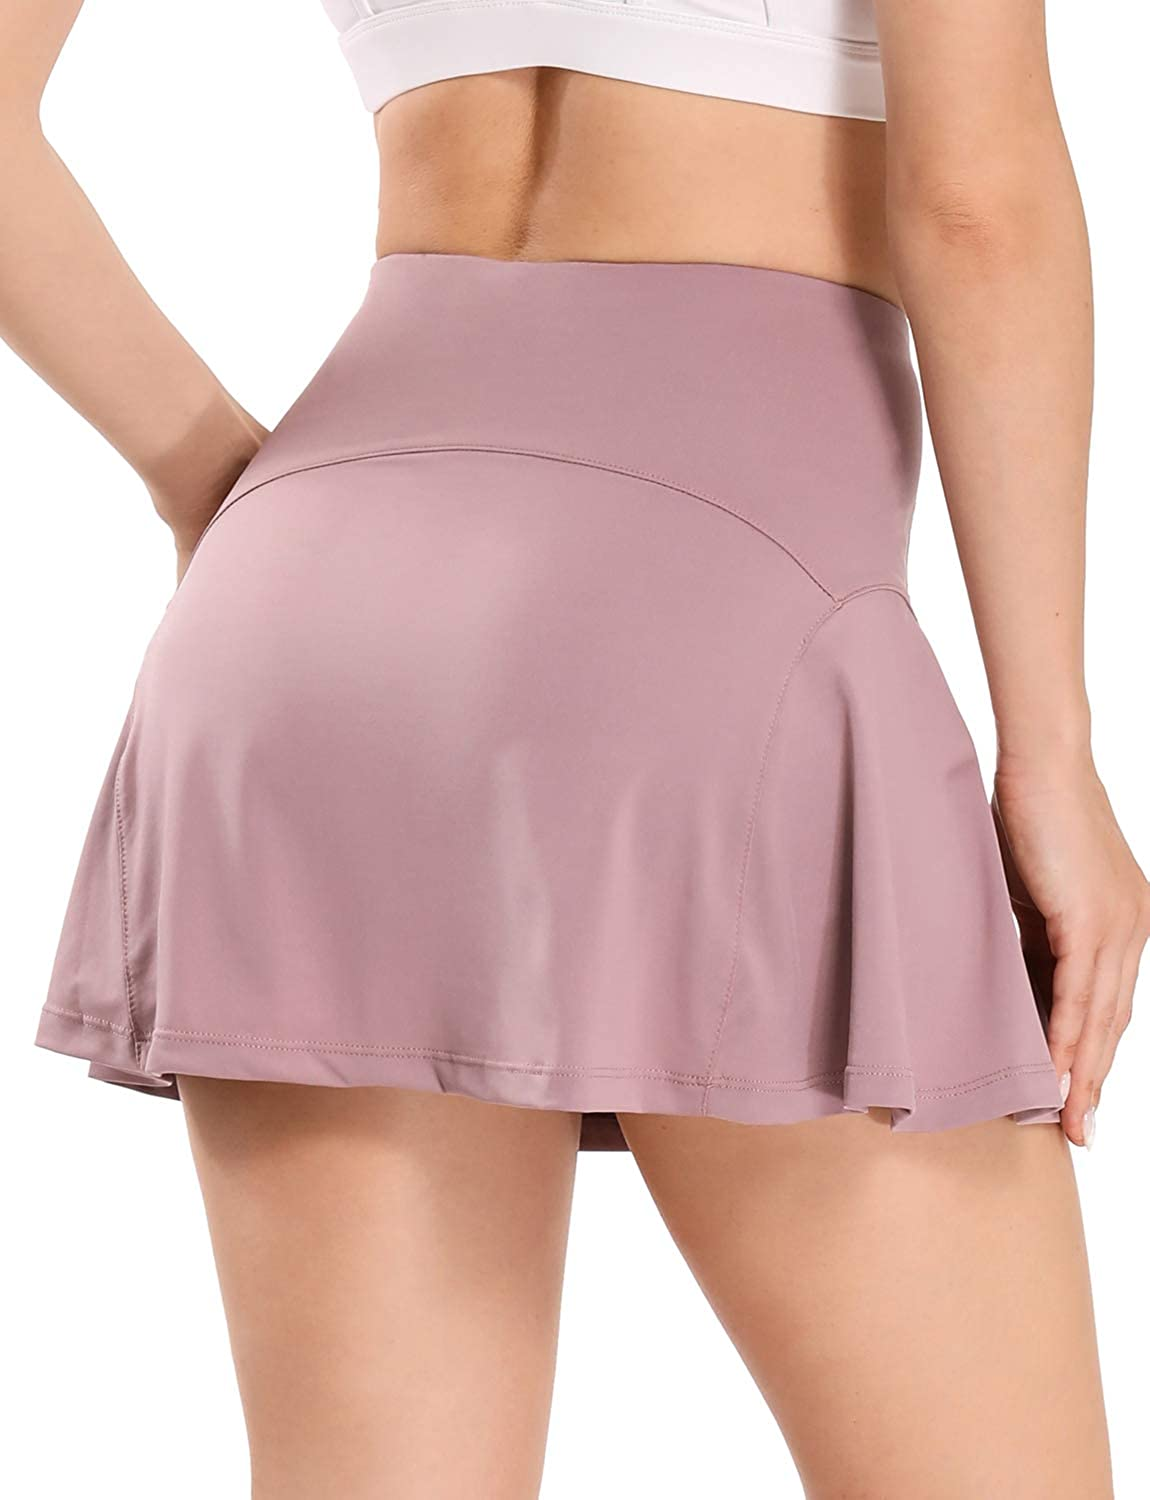 WOWENY Women's Tennis Skirt with Pockets Active Athletic Skorts Golf Running Sports Skirts with Shorts